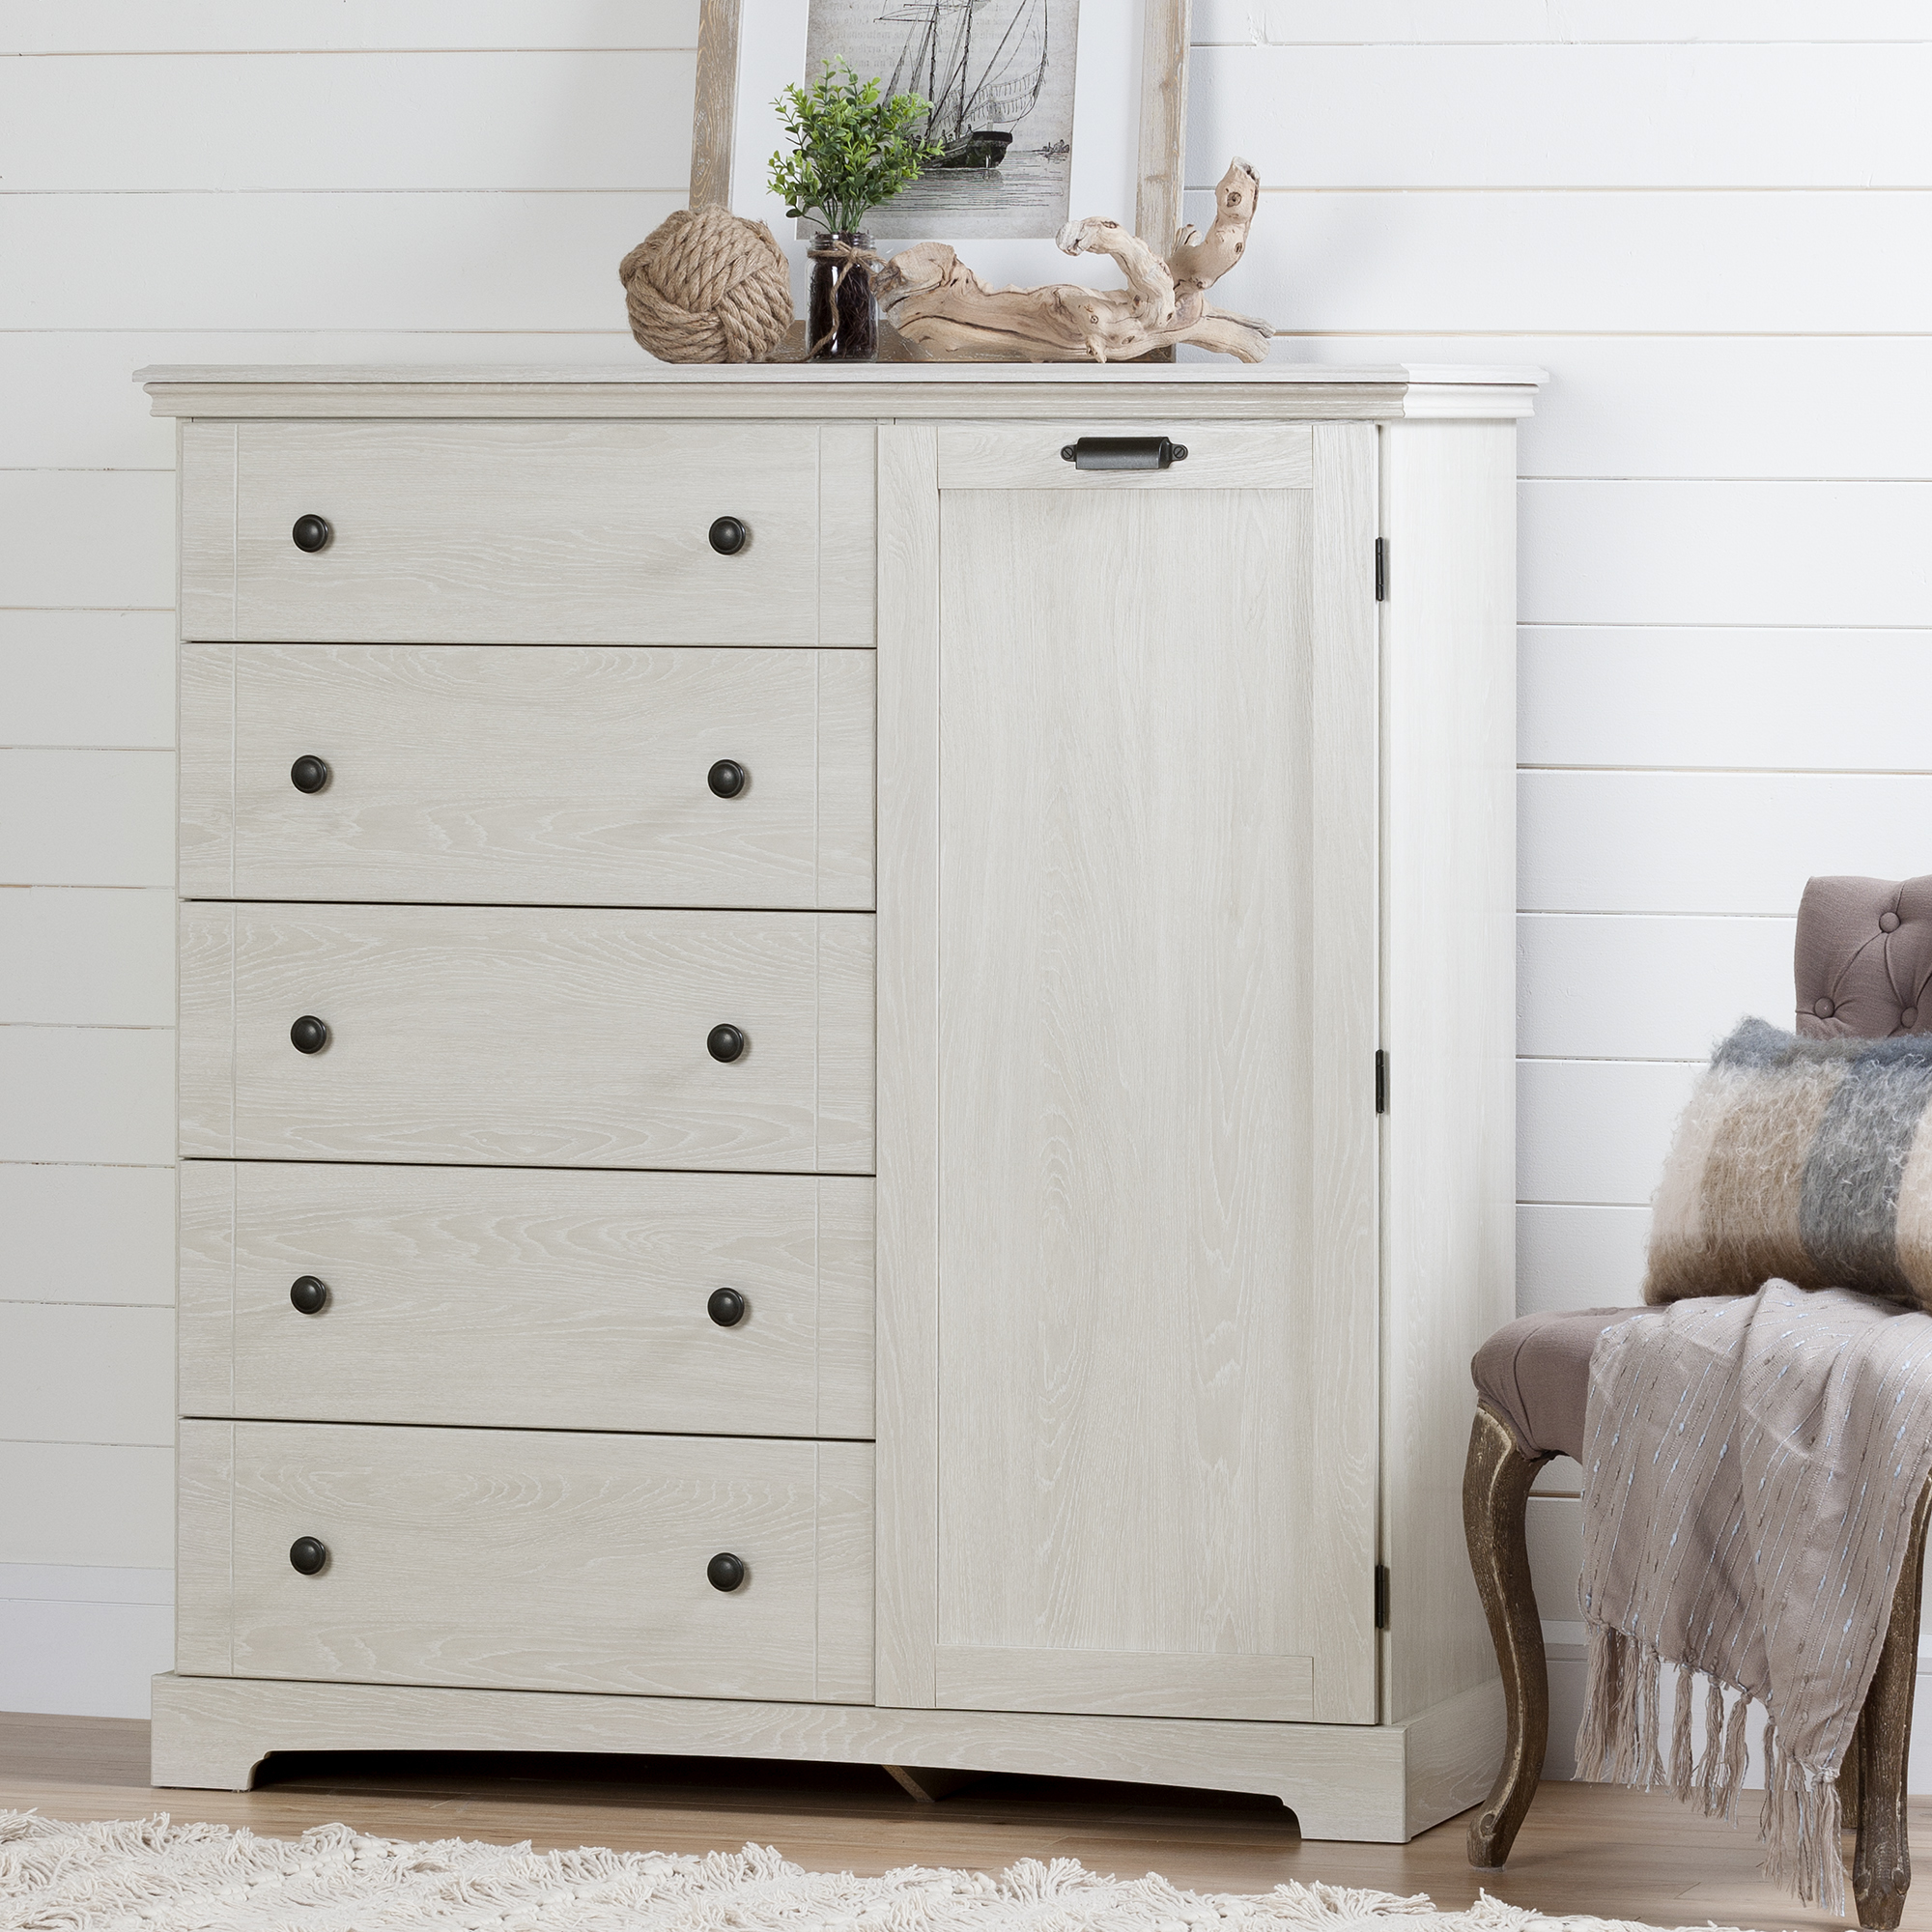 South Shore Avilla Door Chest with 5 Drawers, Winter Oak by South Shore